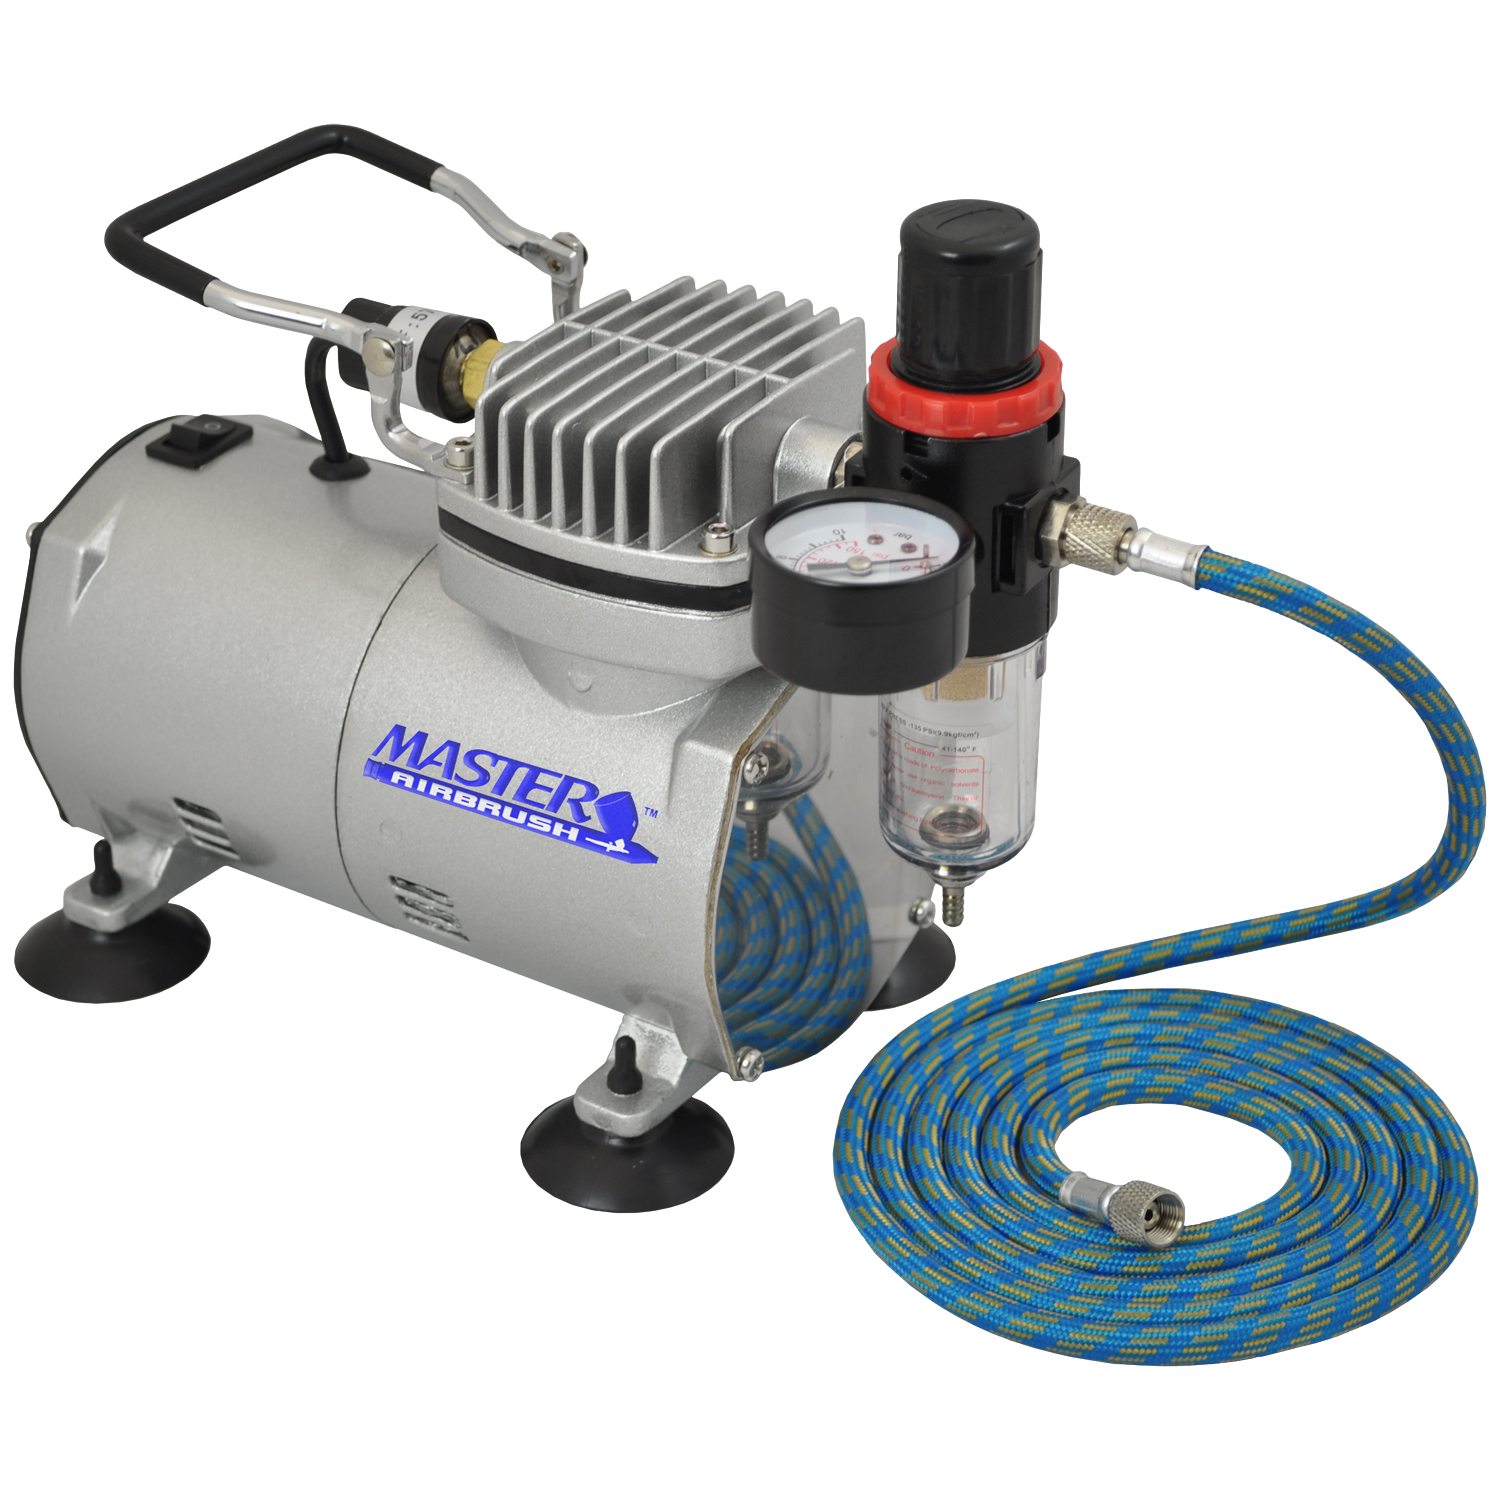 Quiet pro airbrush compressor w air regulator water trap for Air compressor for auto painting